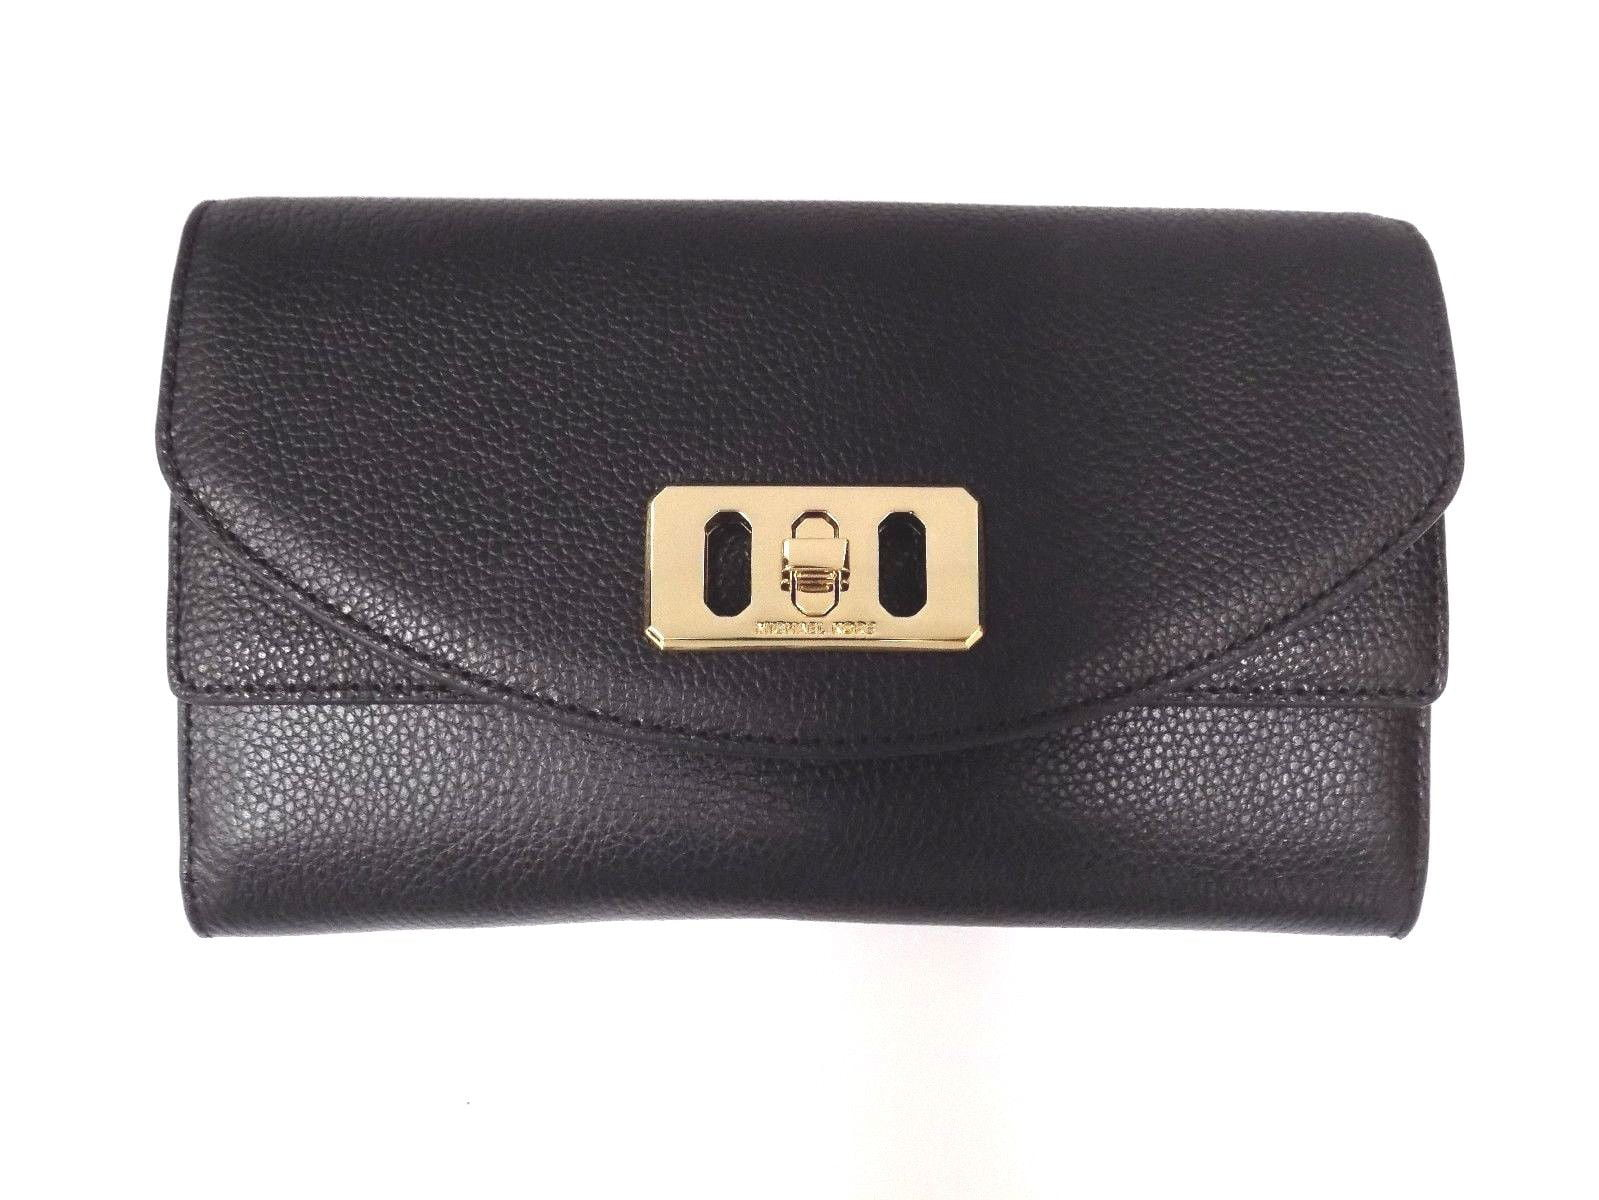 1e216270914 Michael Kors - NEW MICHAEL KORS KARSON BLACK PEBBLED LEATHER TRAVEL WALLET  CLUTCH CROSSBODY BAG - Walmart.com